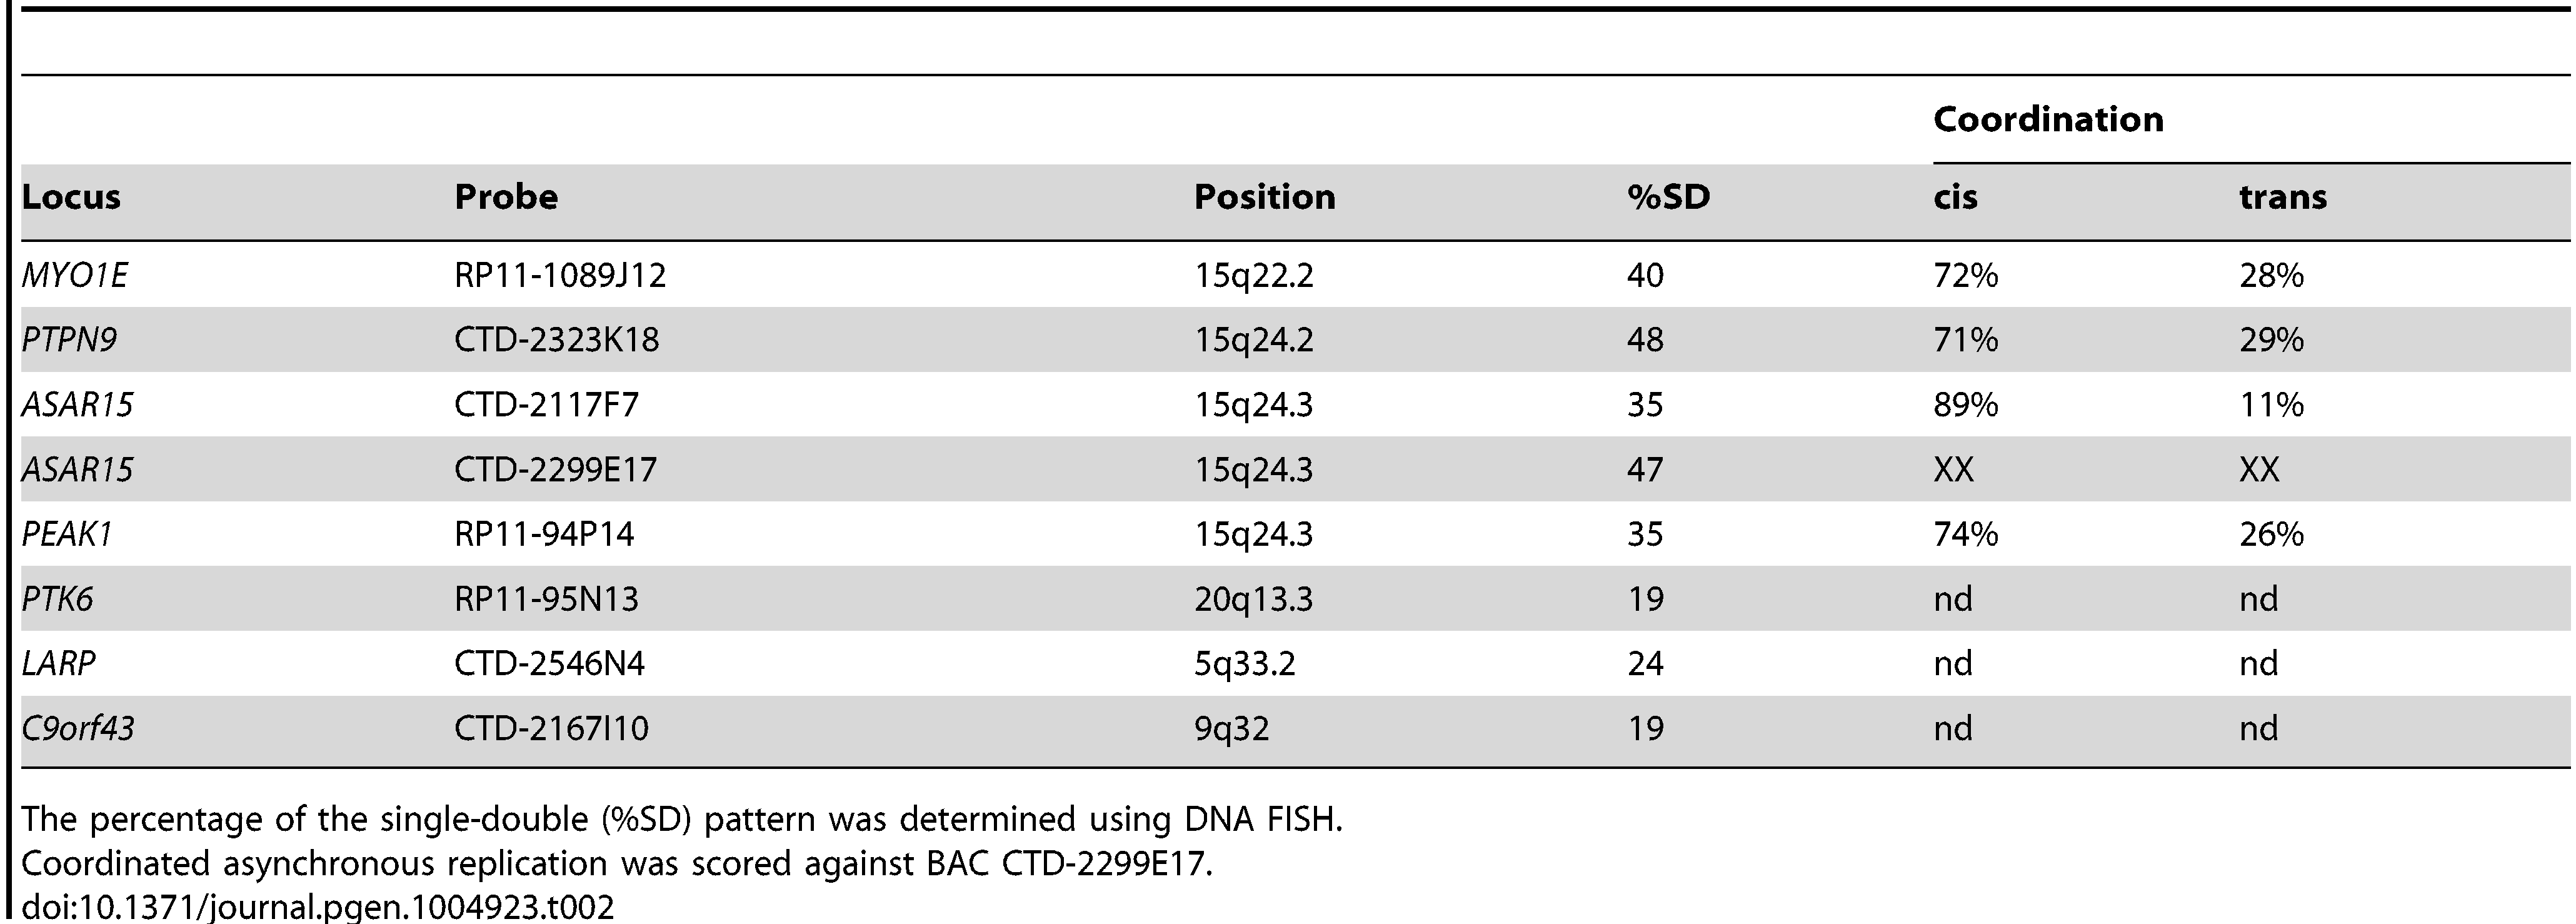 DNA FISH analysis of human loci.